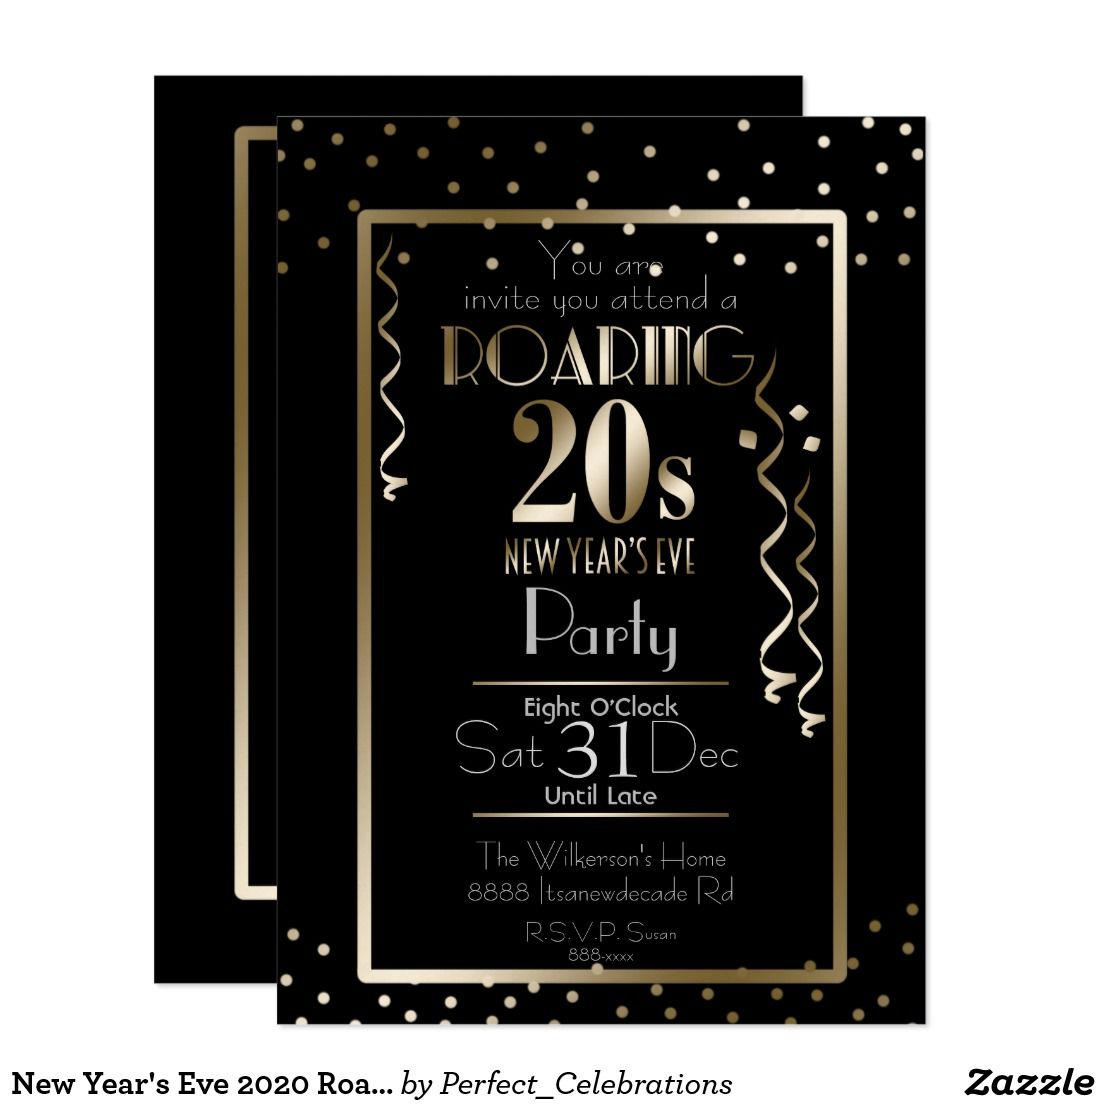 New Year's Eve 2020 Roaring 20s Retro Gold Invitation